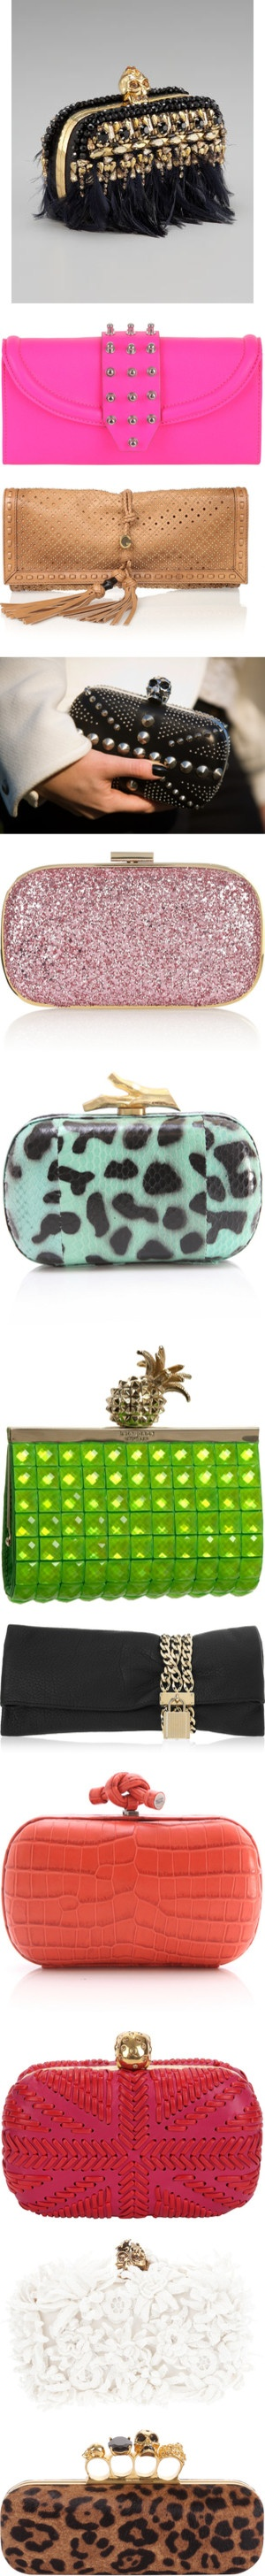 """Clutch my heart!"" by sinnersss on Polyvore"